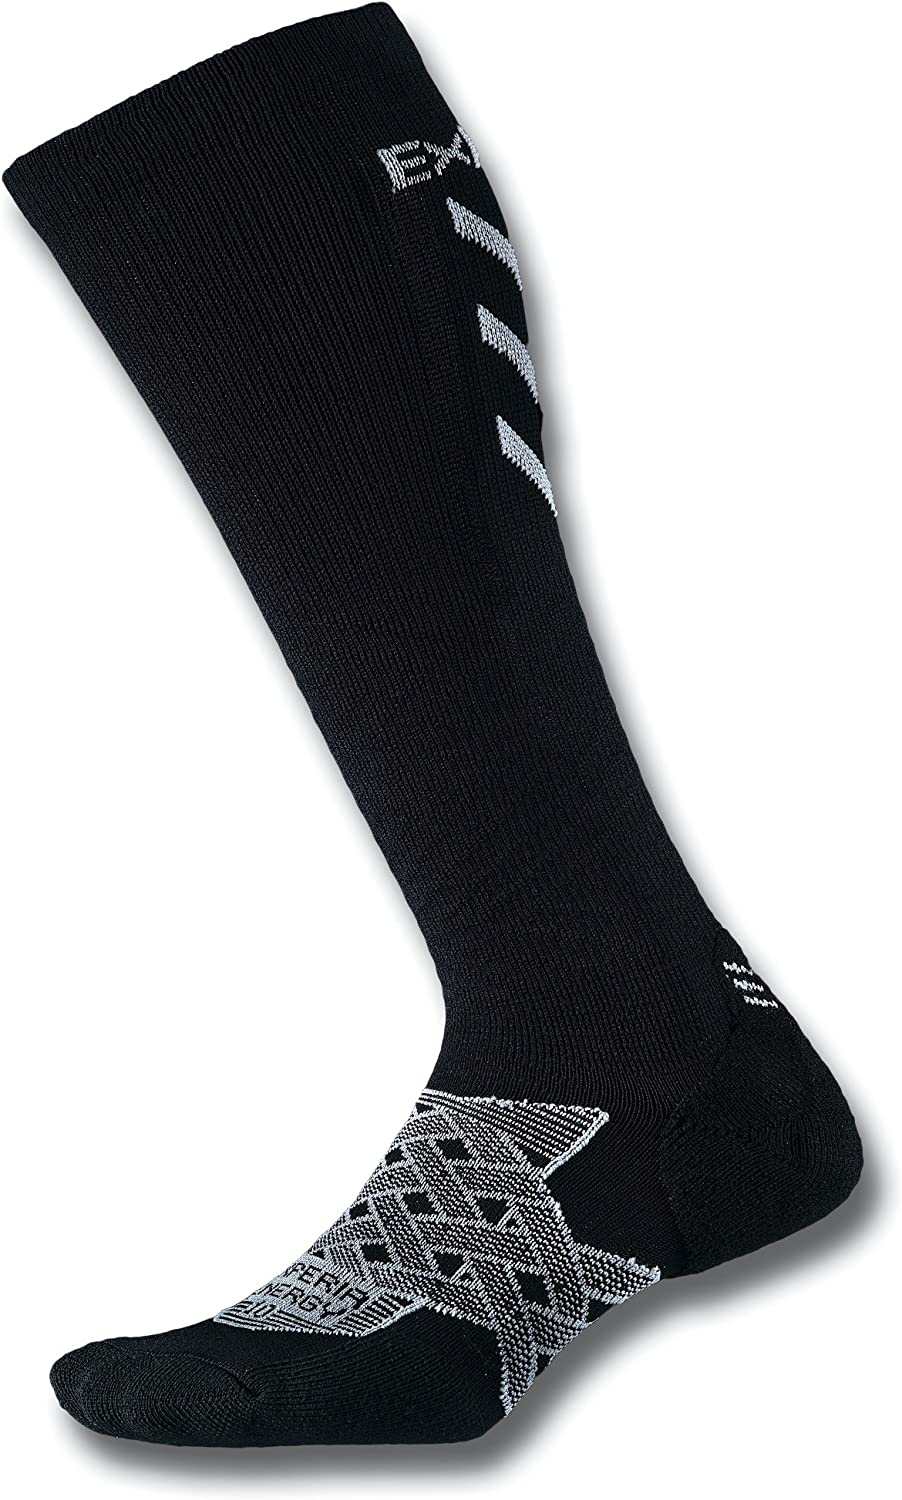 Thorlos Experia mens Energy Xeou Thin Cushion Running Compression Over the Calf Socks